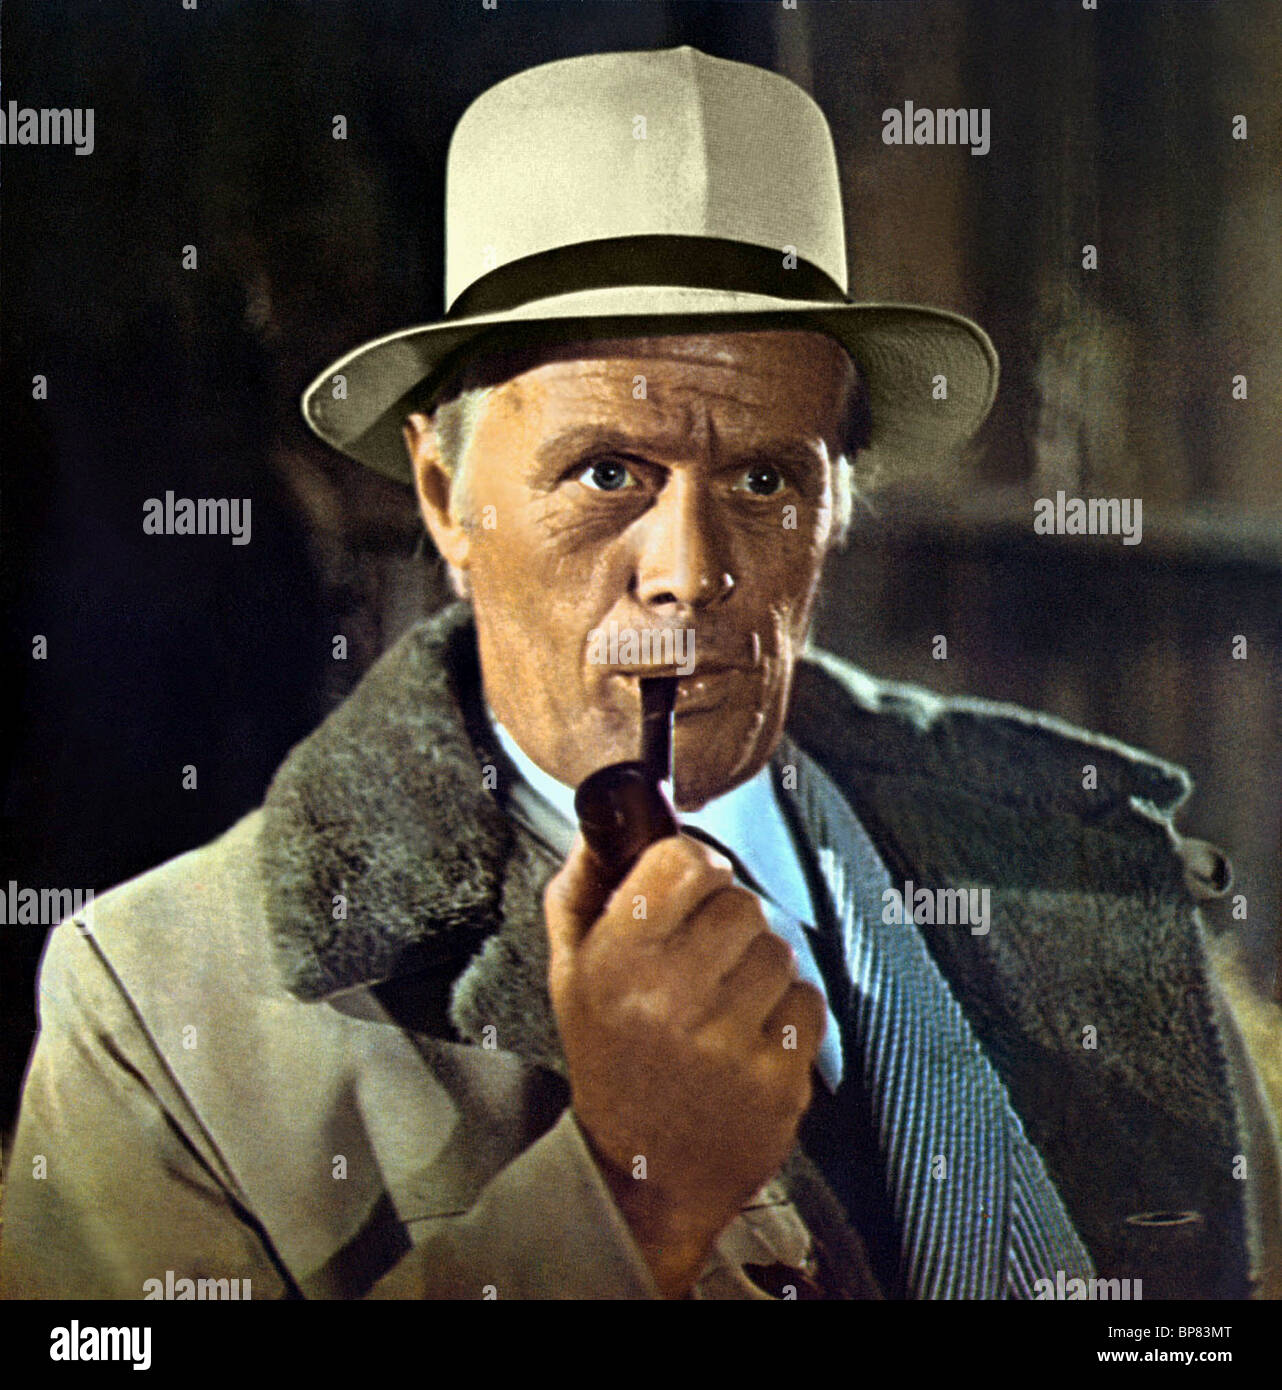 RICHARD WIDMARK THE MOONSHINE WAR (1970) - Stock Image